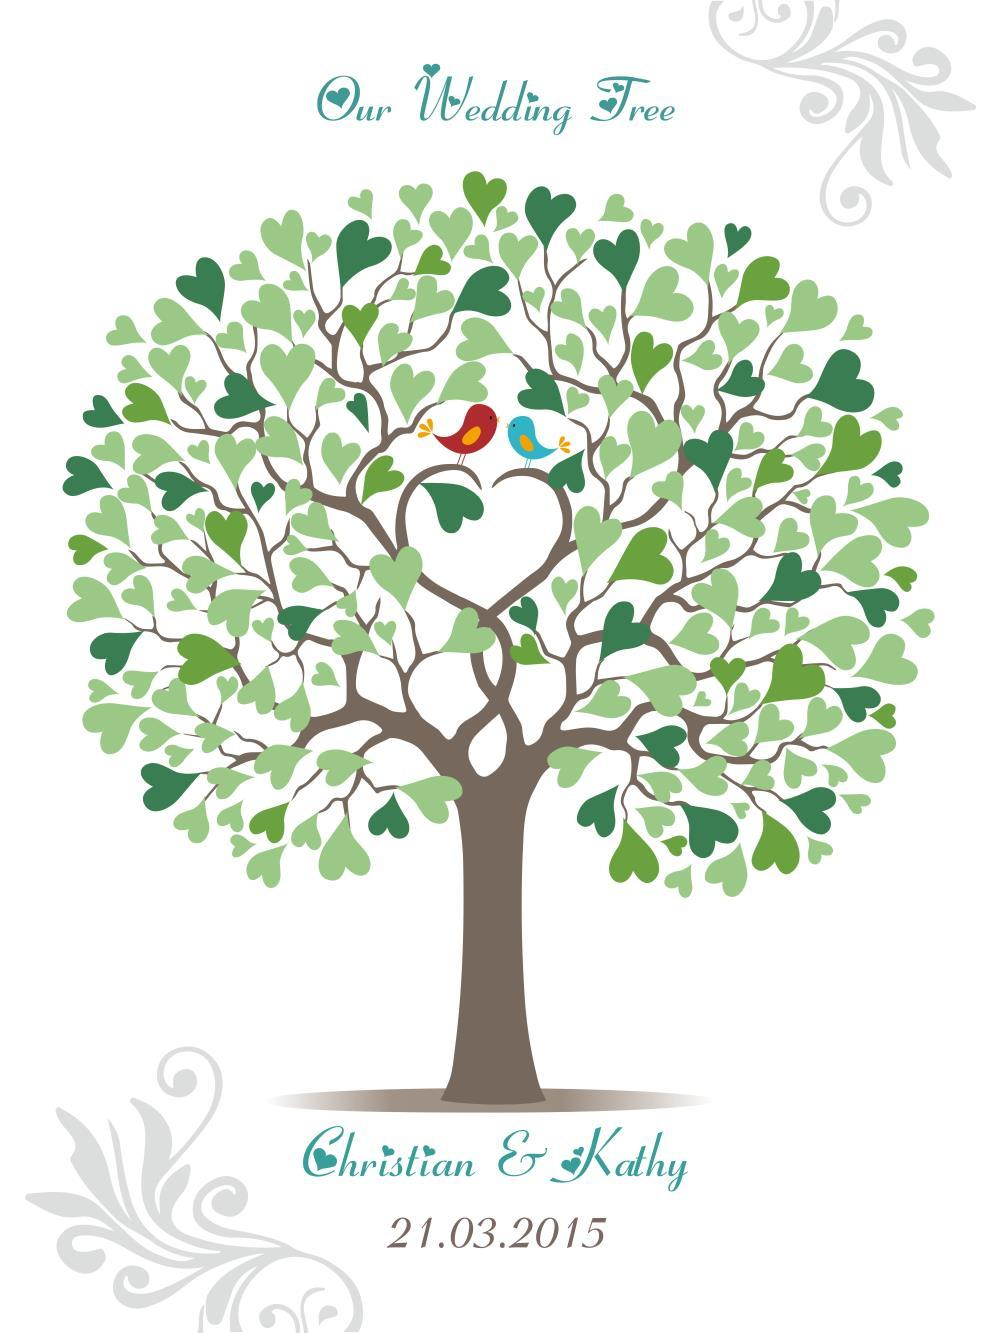 2017 Wedding Tree Guest Book Signature OnlyLover Birds Heart Shape Leaf Wedding Tree Guest Book